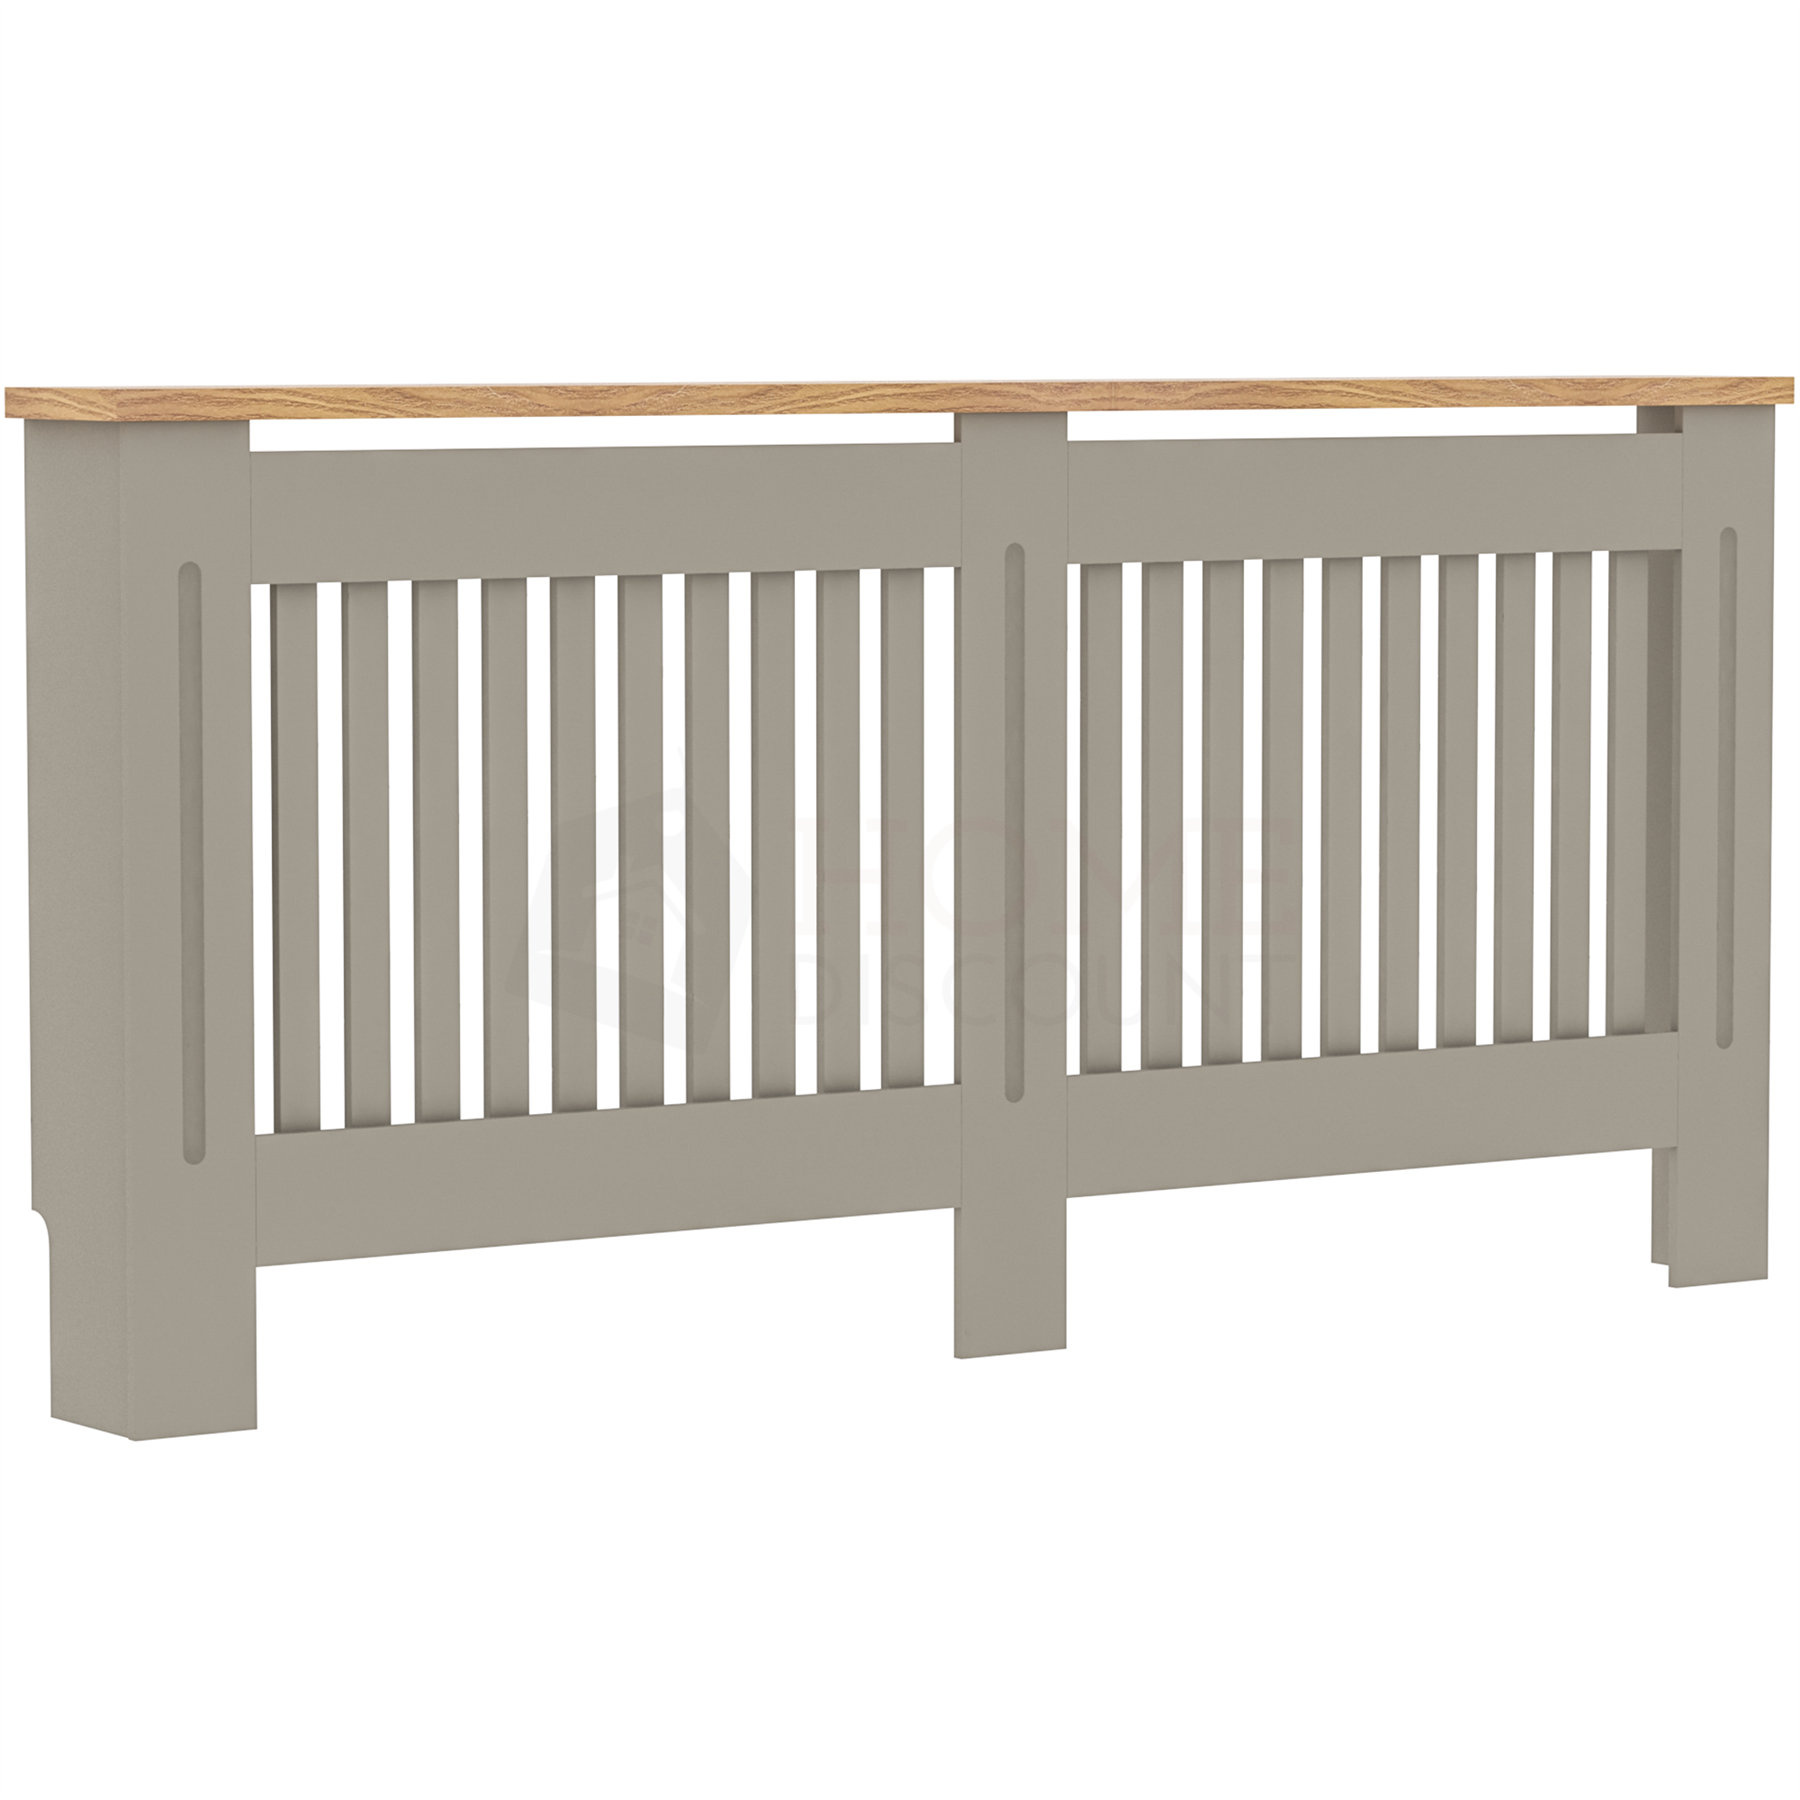 thumbnail 65 - Radiator Cover White Unfinished Modern Traditional Wood Grill Cabinet Furniture